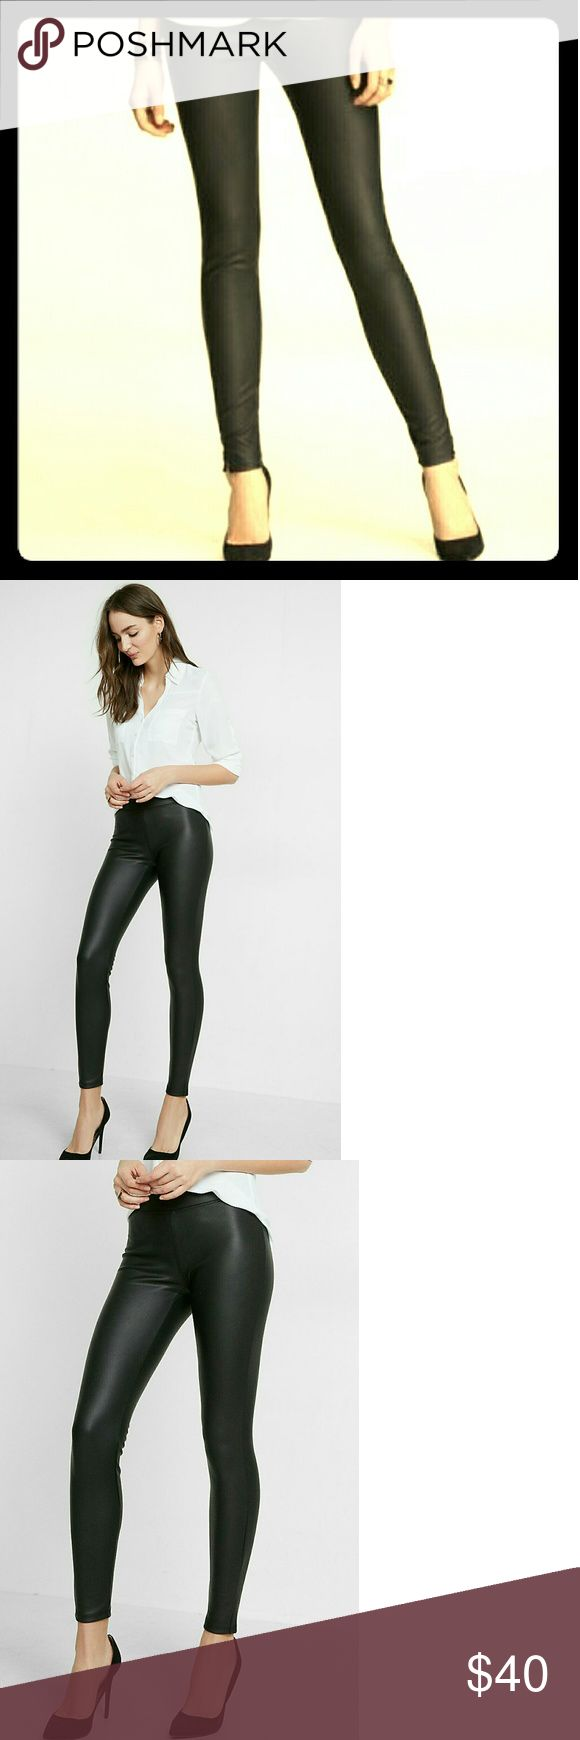 Express Scuba (Faux Leather) Leggings - NWT! Express Scuba Leggings in Pitch Black! Brand new with tags and still in the packaging sent directly from Express!   Rock out the leather-like texture and luster of curve-hugging scuba. Legging looks don't get any sexier or sleeker than this! Easy to dress up for a night out or pair with a t-shirt for a more casual day look.   Size: Medium Color: Pitch Black Express Pants Leggings